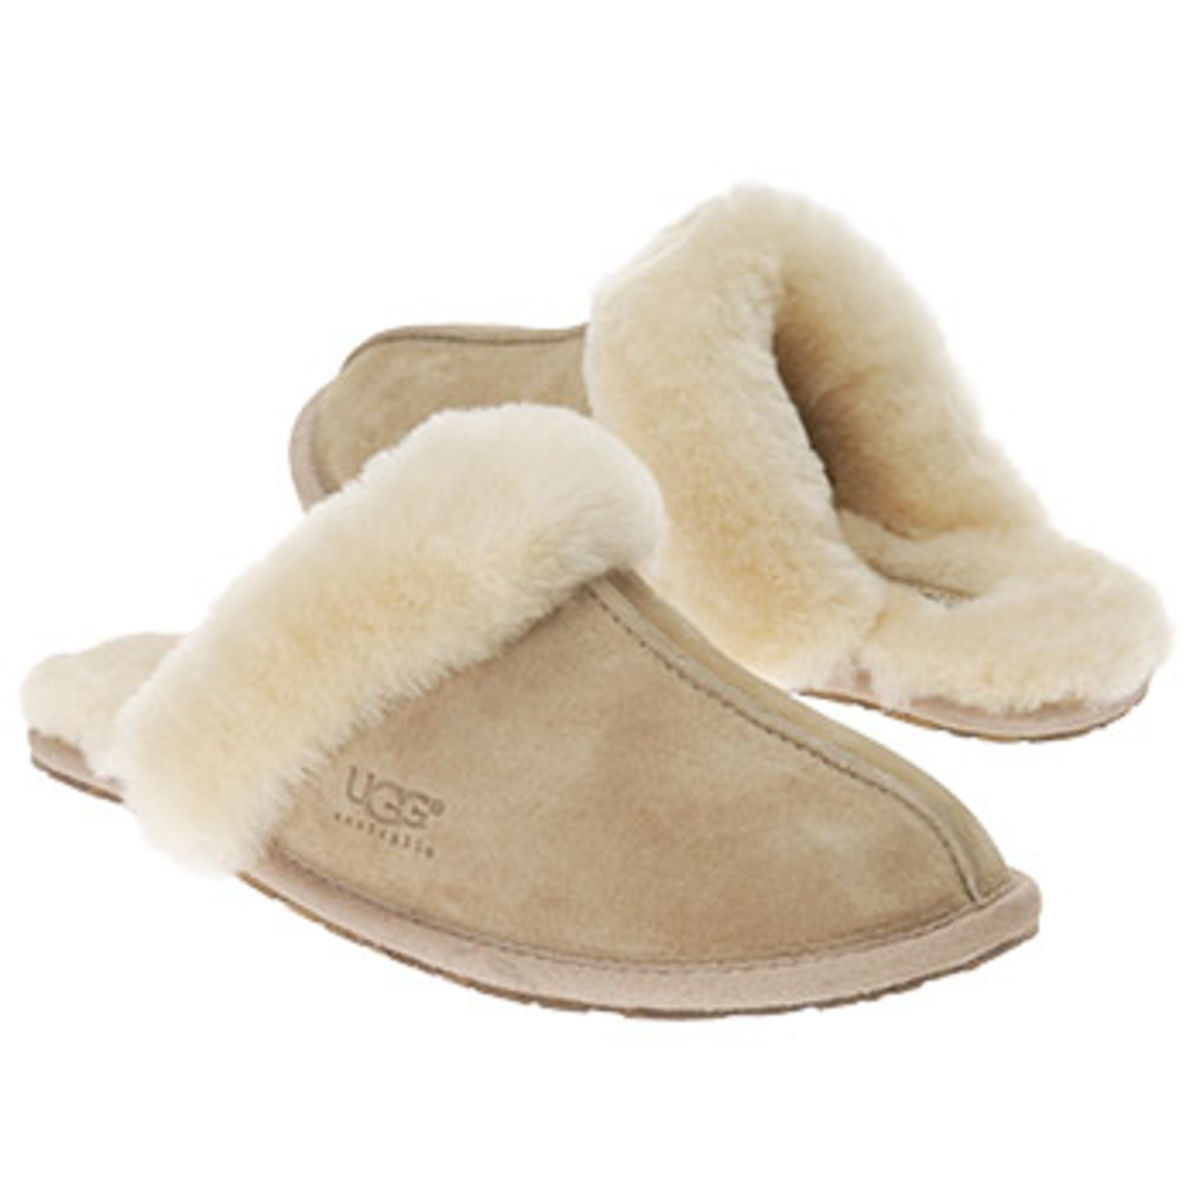 Headline for Best Inexpensive Genuine Ugg Slippers For Women On Sale - Reviews And Ratings